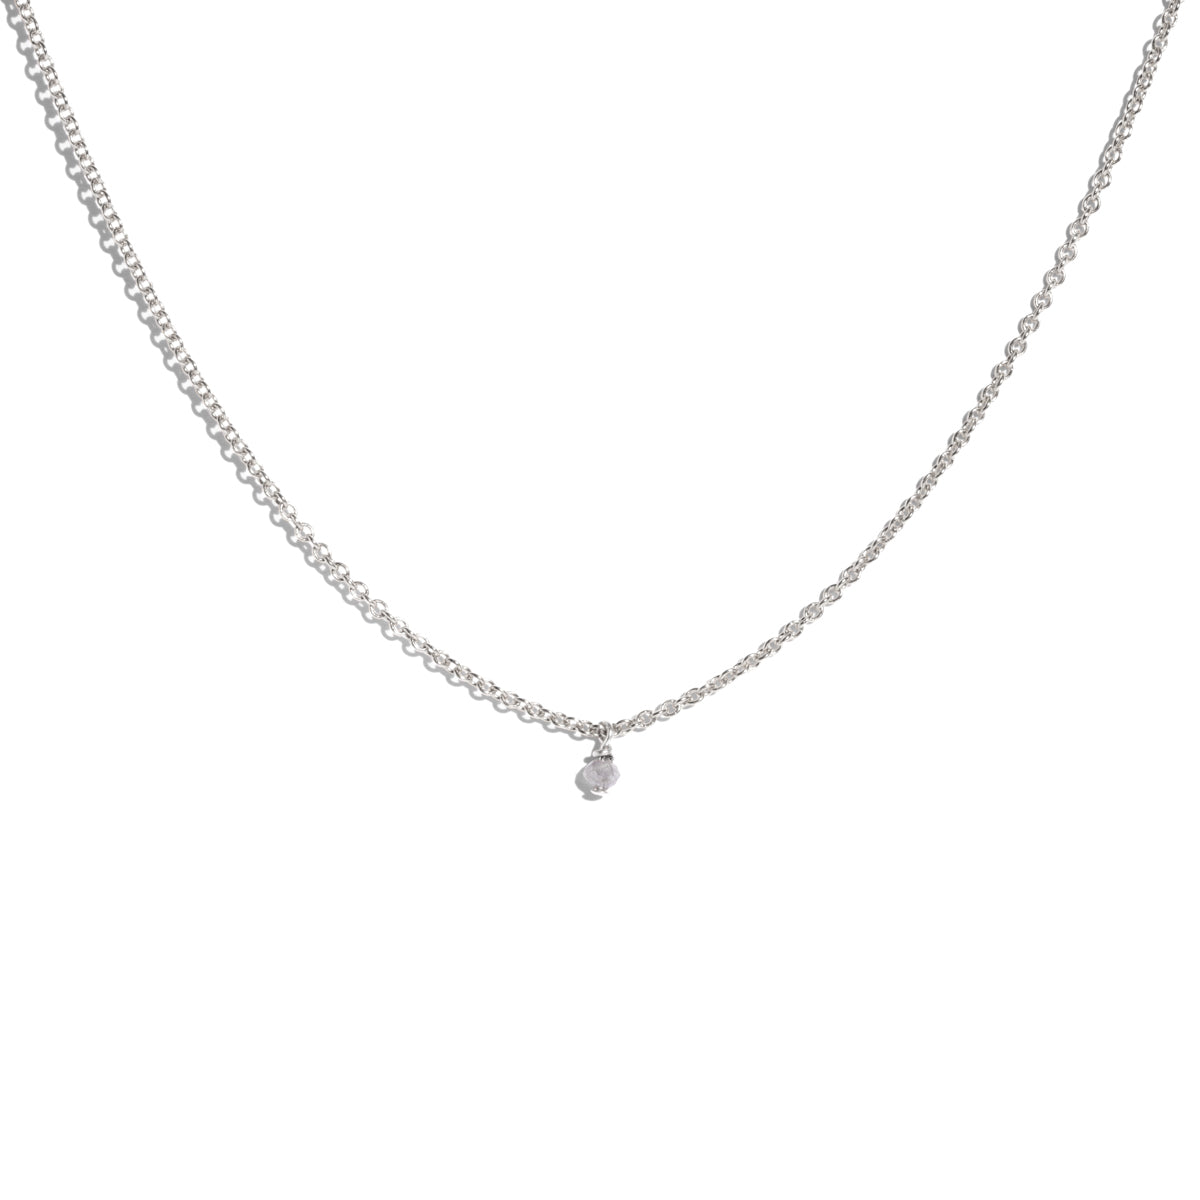 The Silver Epoch Salt & Pepper Diamond Necklace